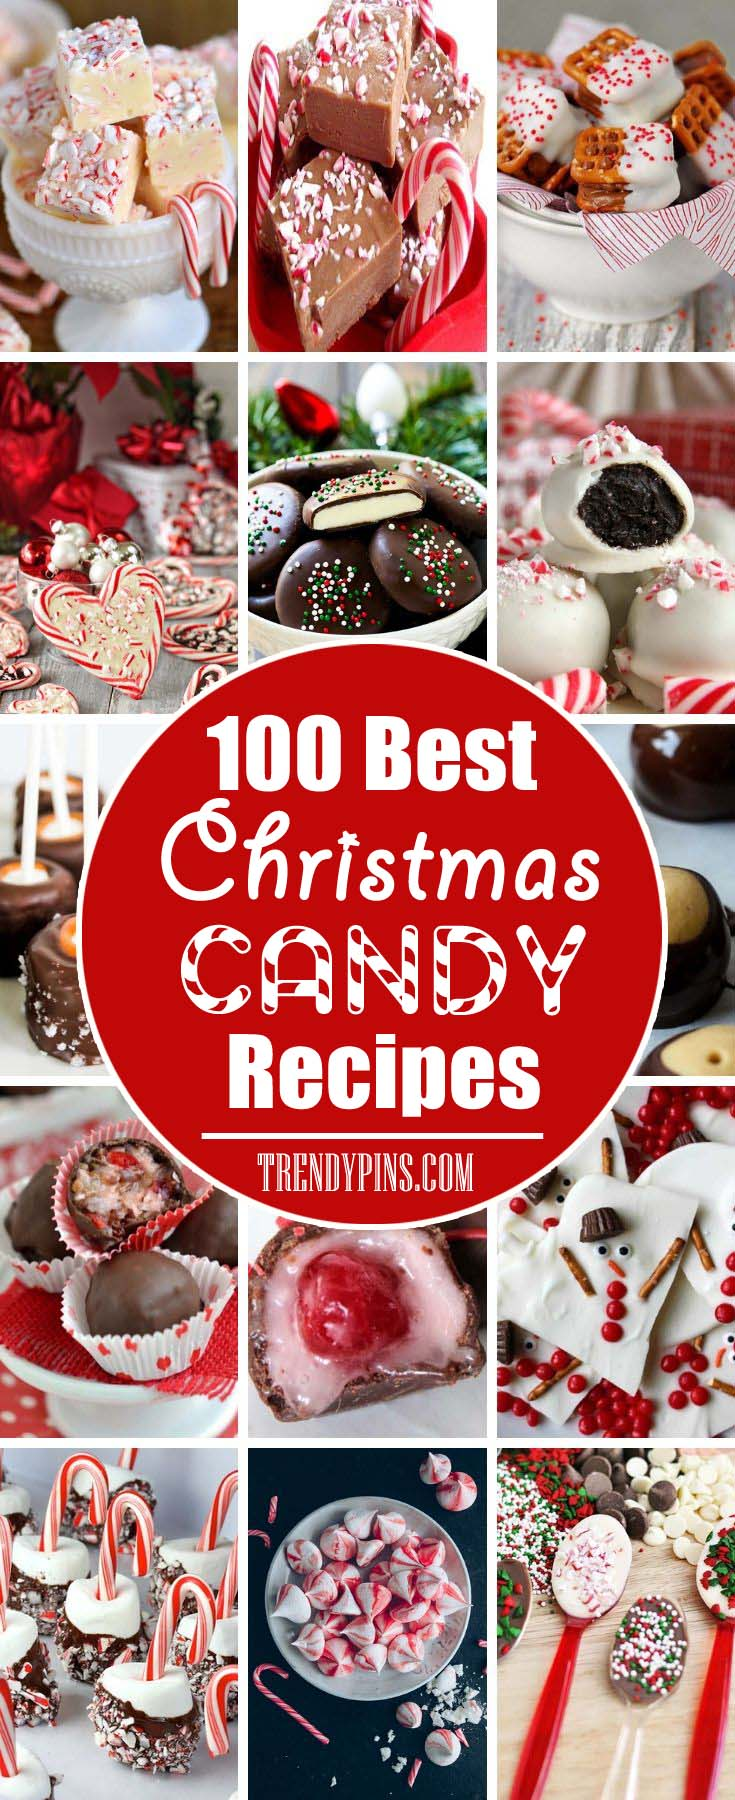 100 Best Christmas Candy Recipes Trendy Pins